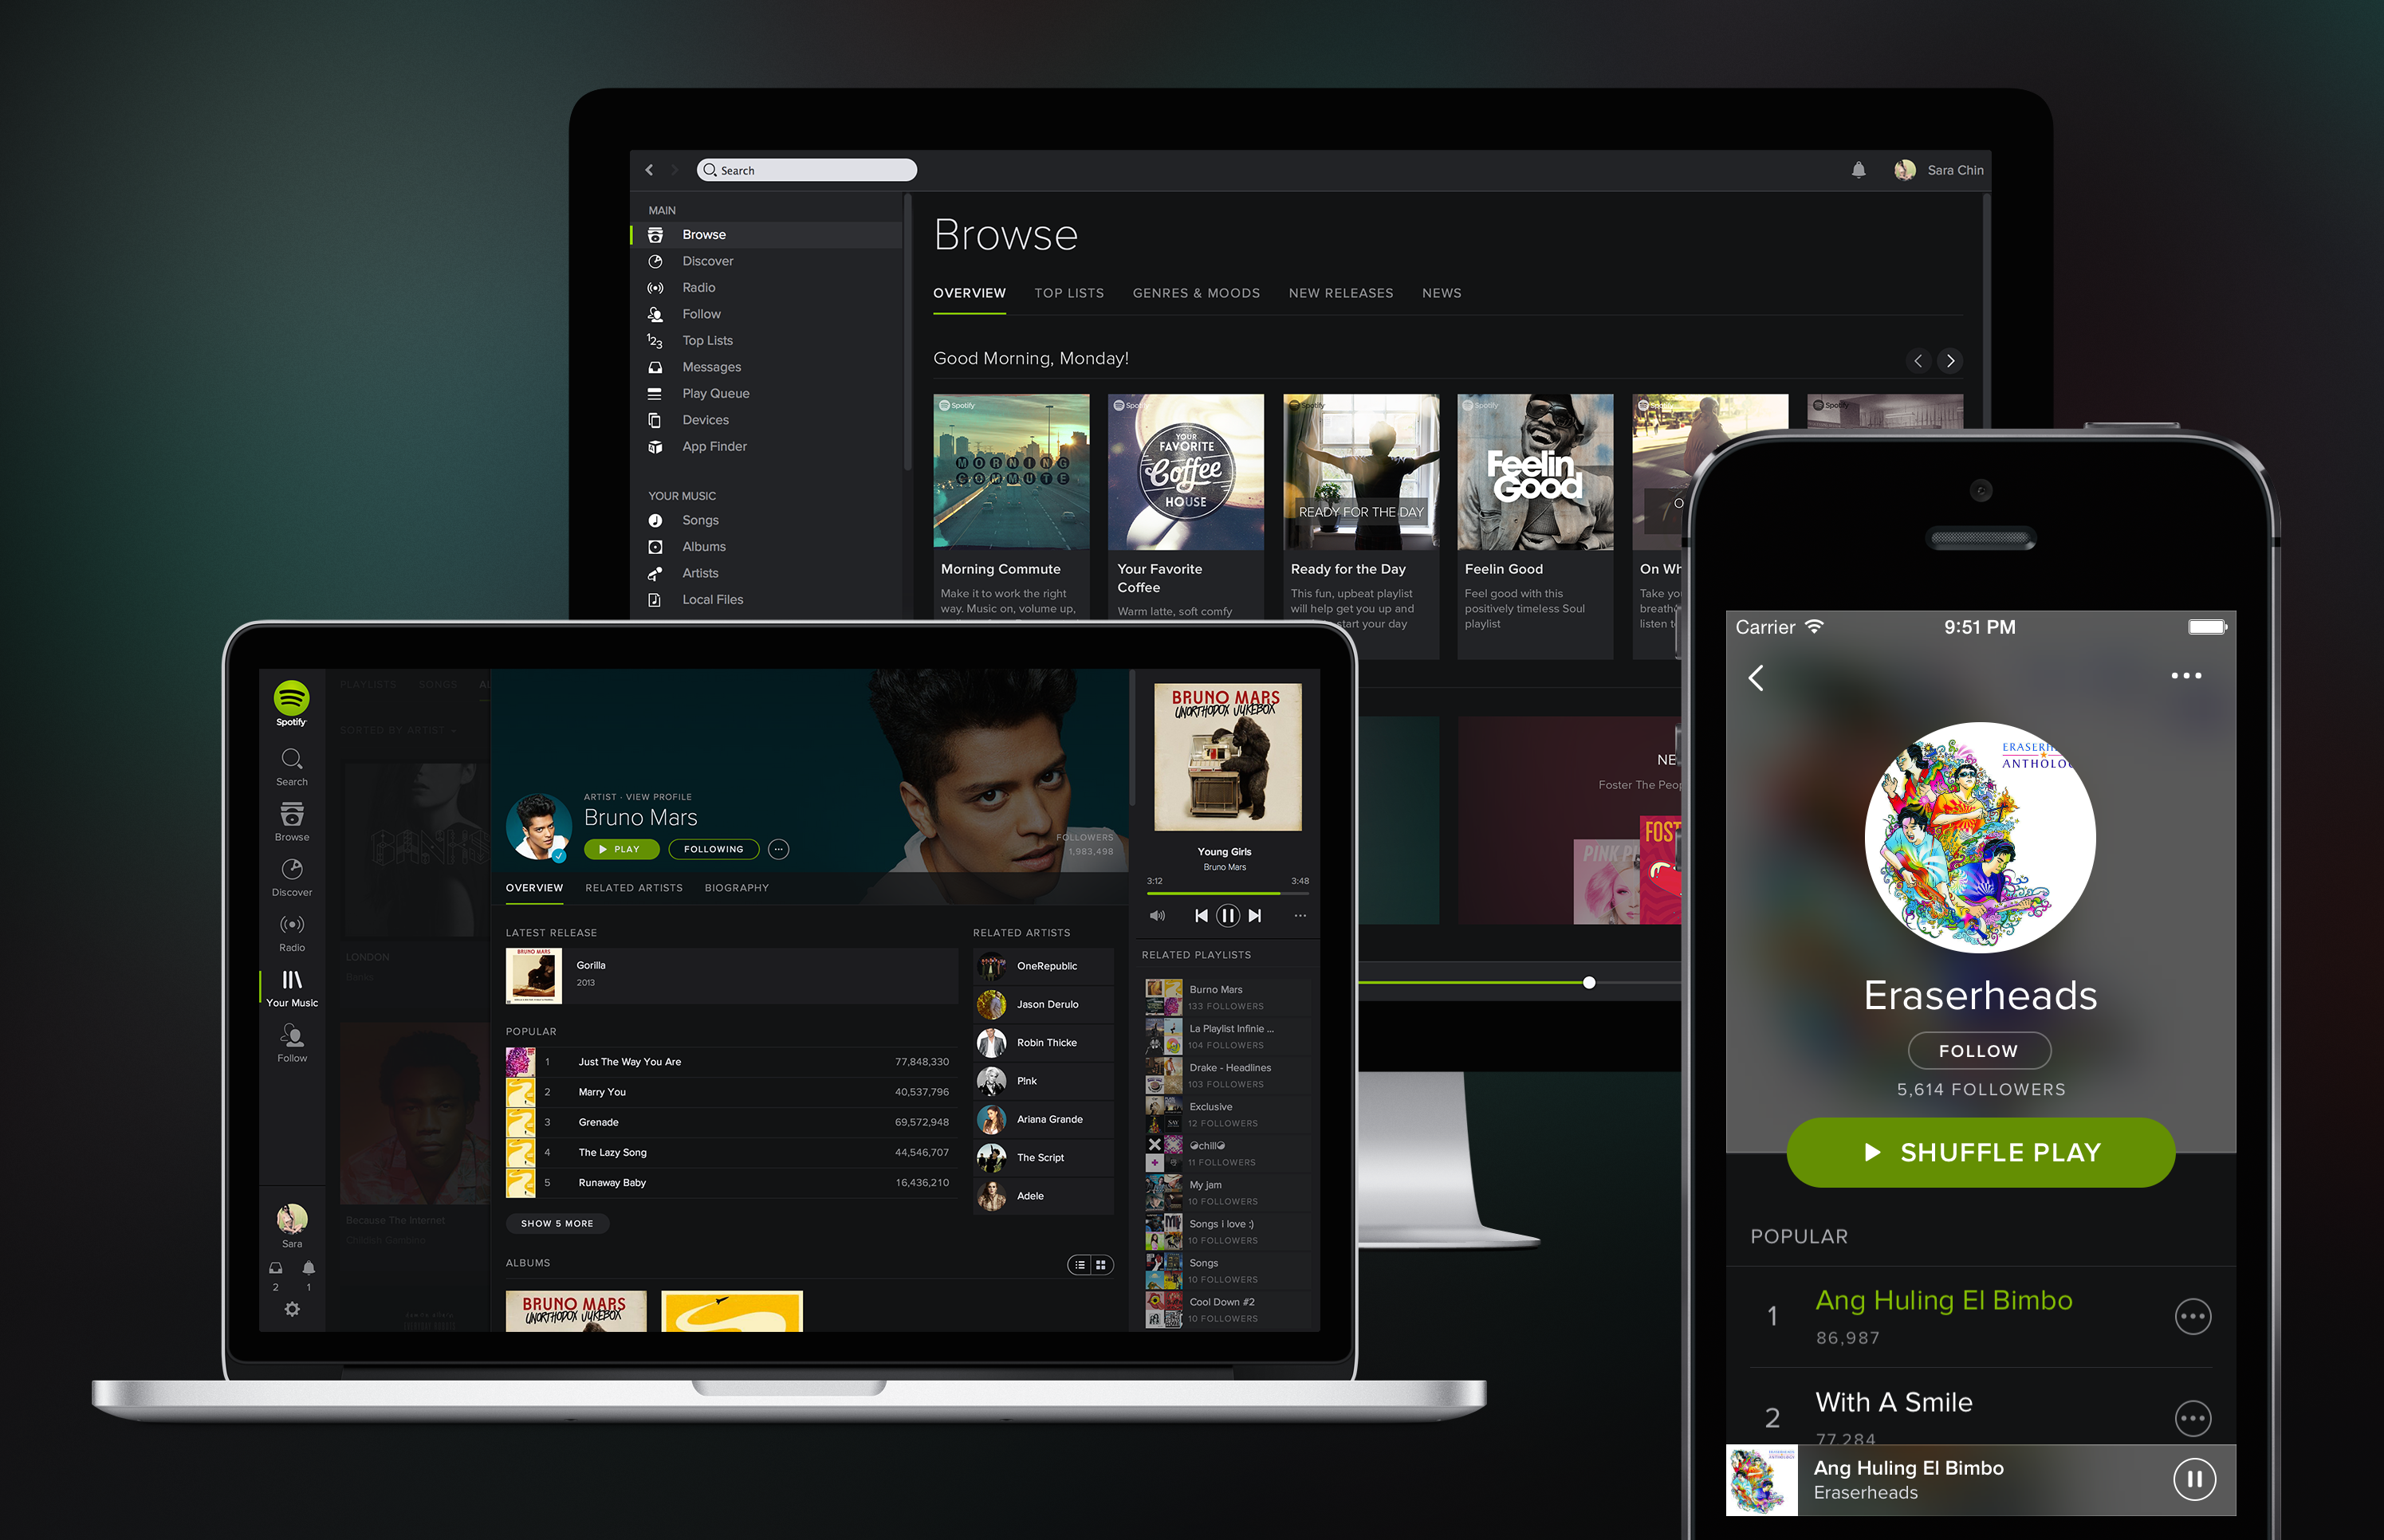 spotify desktop and mobile design